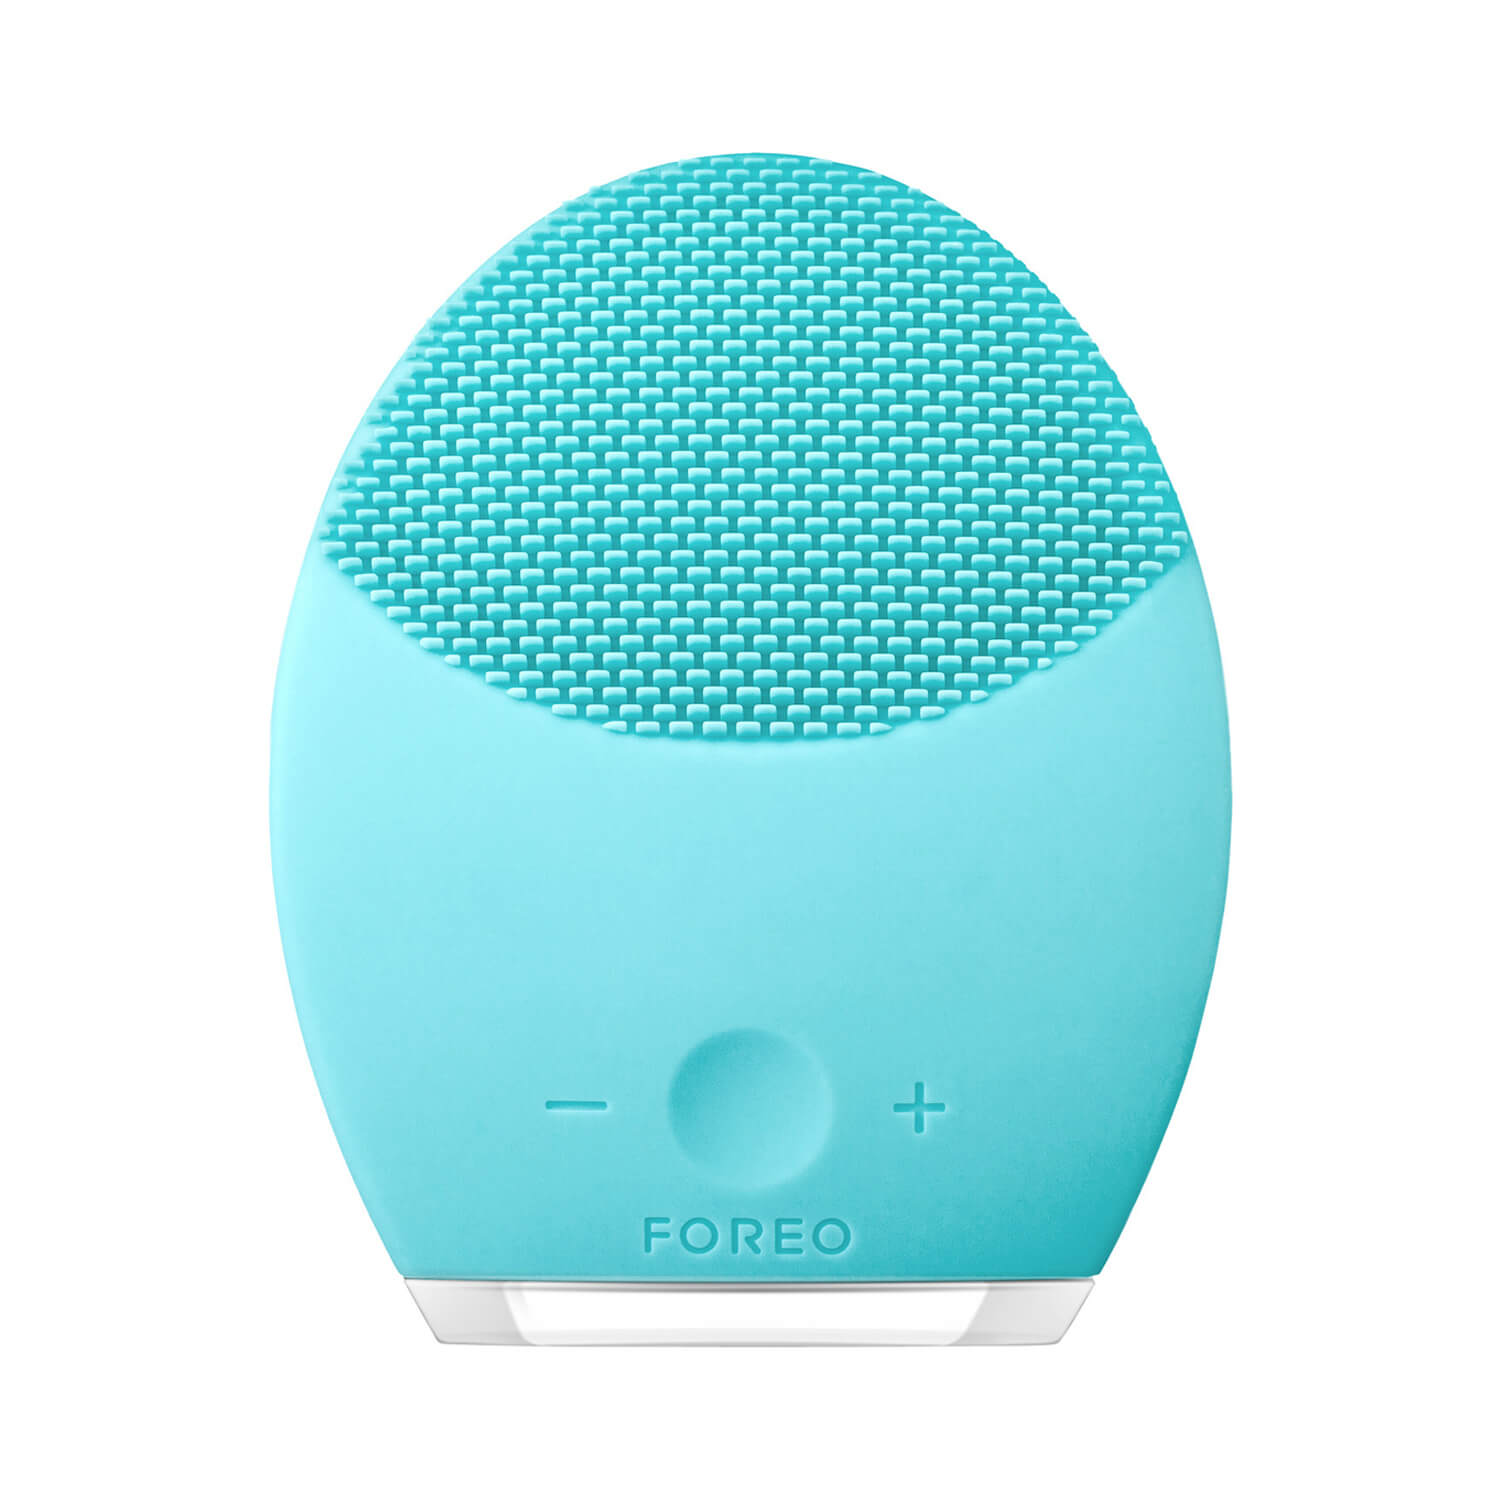 FOREO LUNA 2 Facial Cleansing Brush for Oily Skin